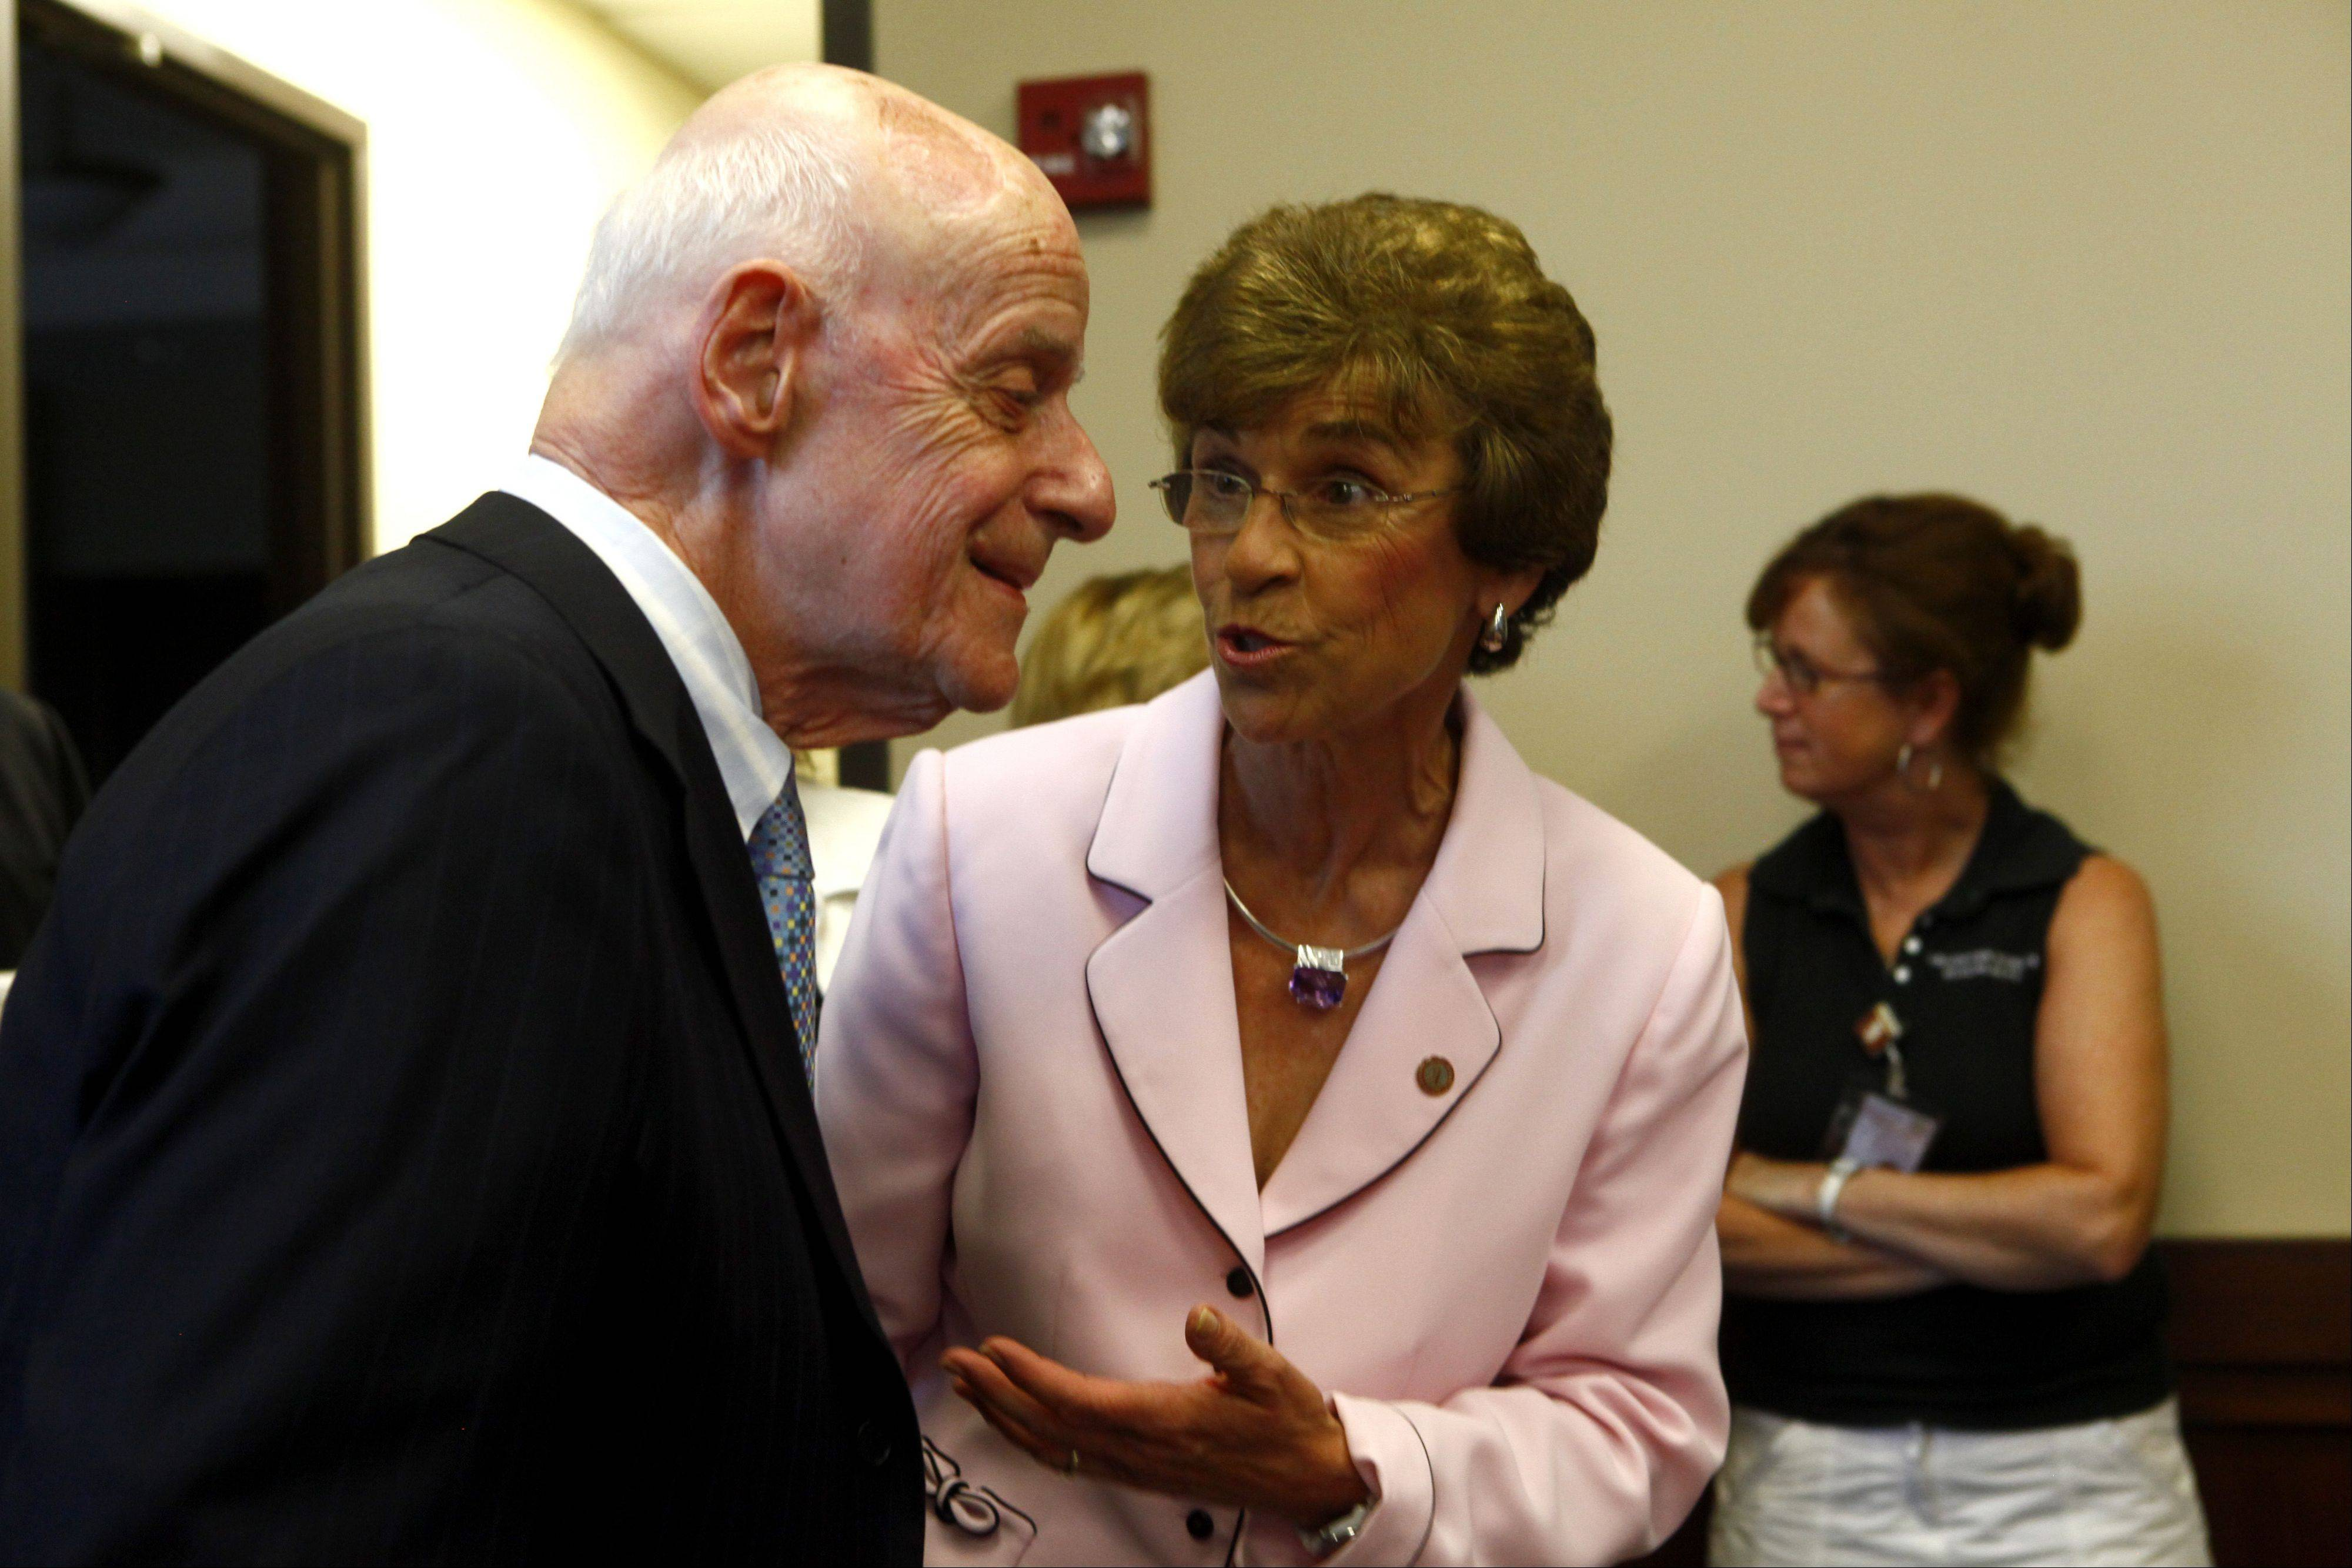 Jack Siegel talks with Village President Arlene Mulder during a reception for Siegel on Monday night before the Arlington Heights Village Board meeting.